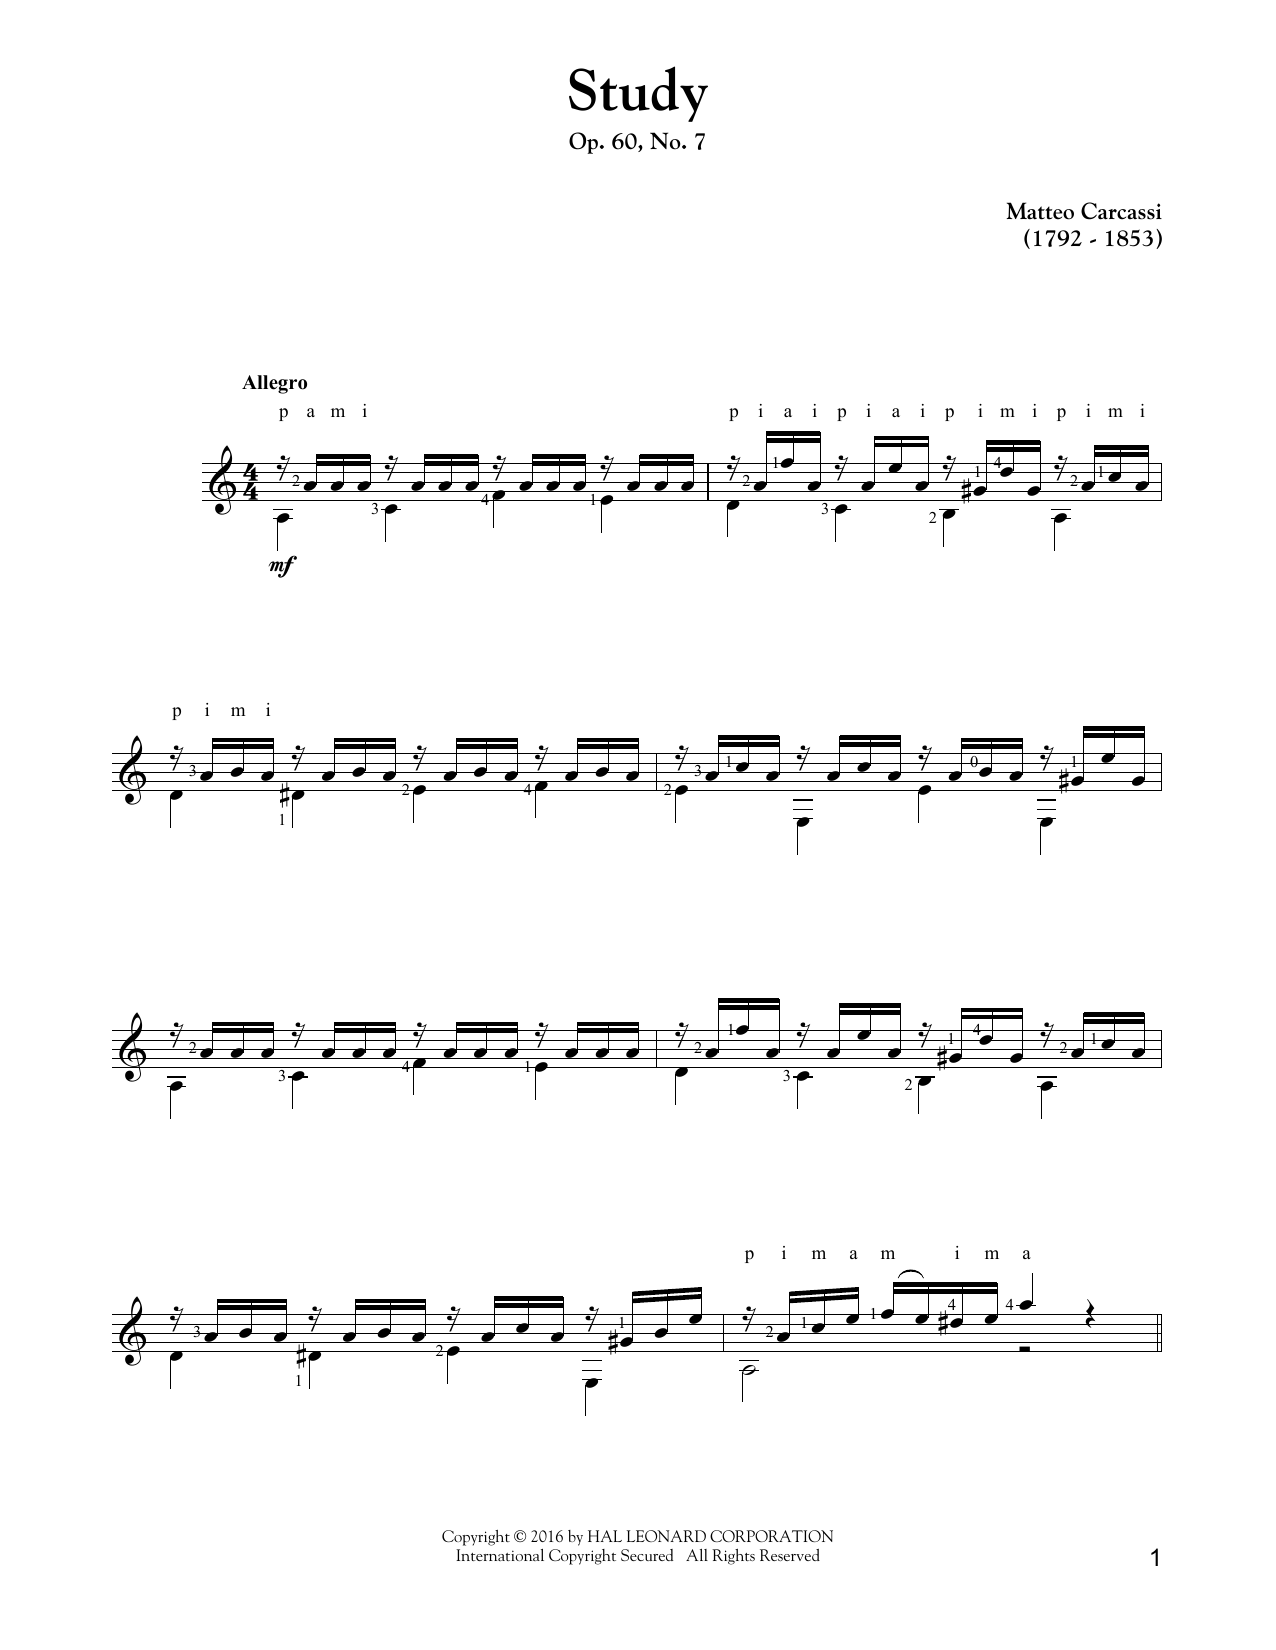 Tablature guitare Study, Op. 60, No. 7 de Matteo Carcassi - Tablature Guitare